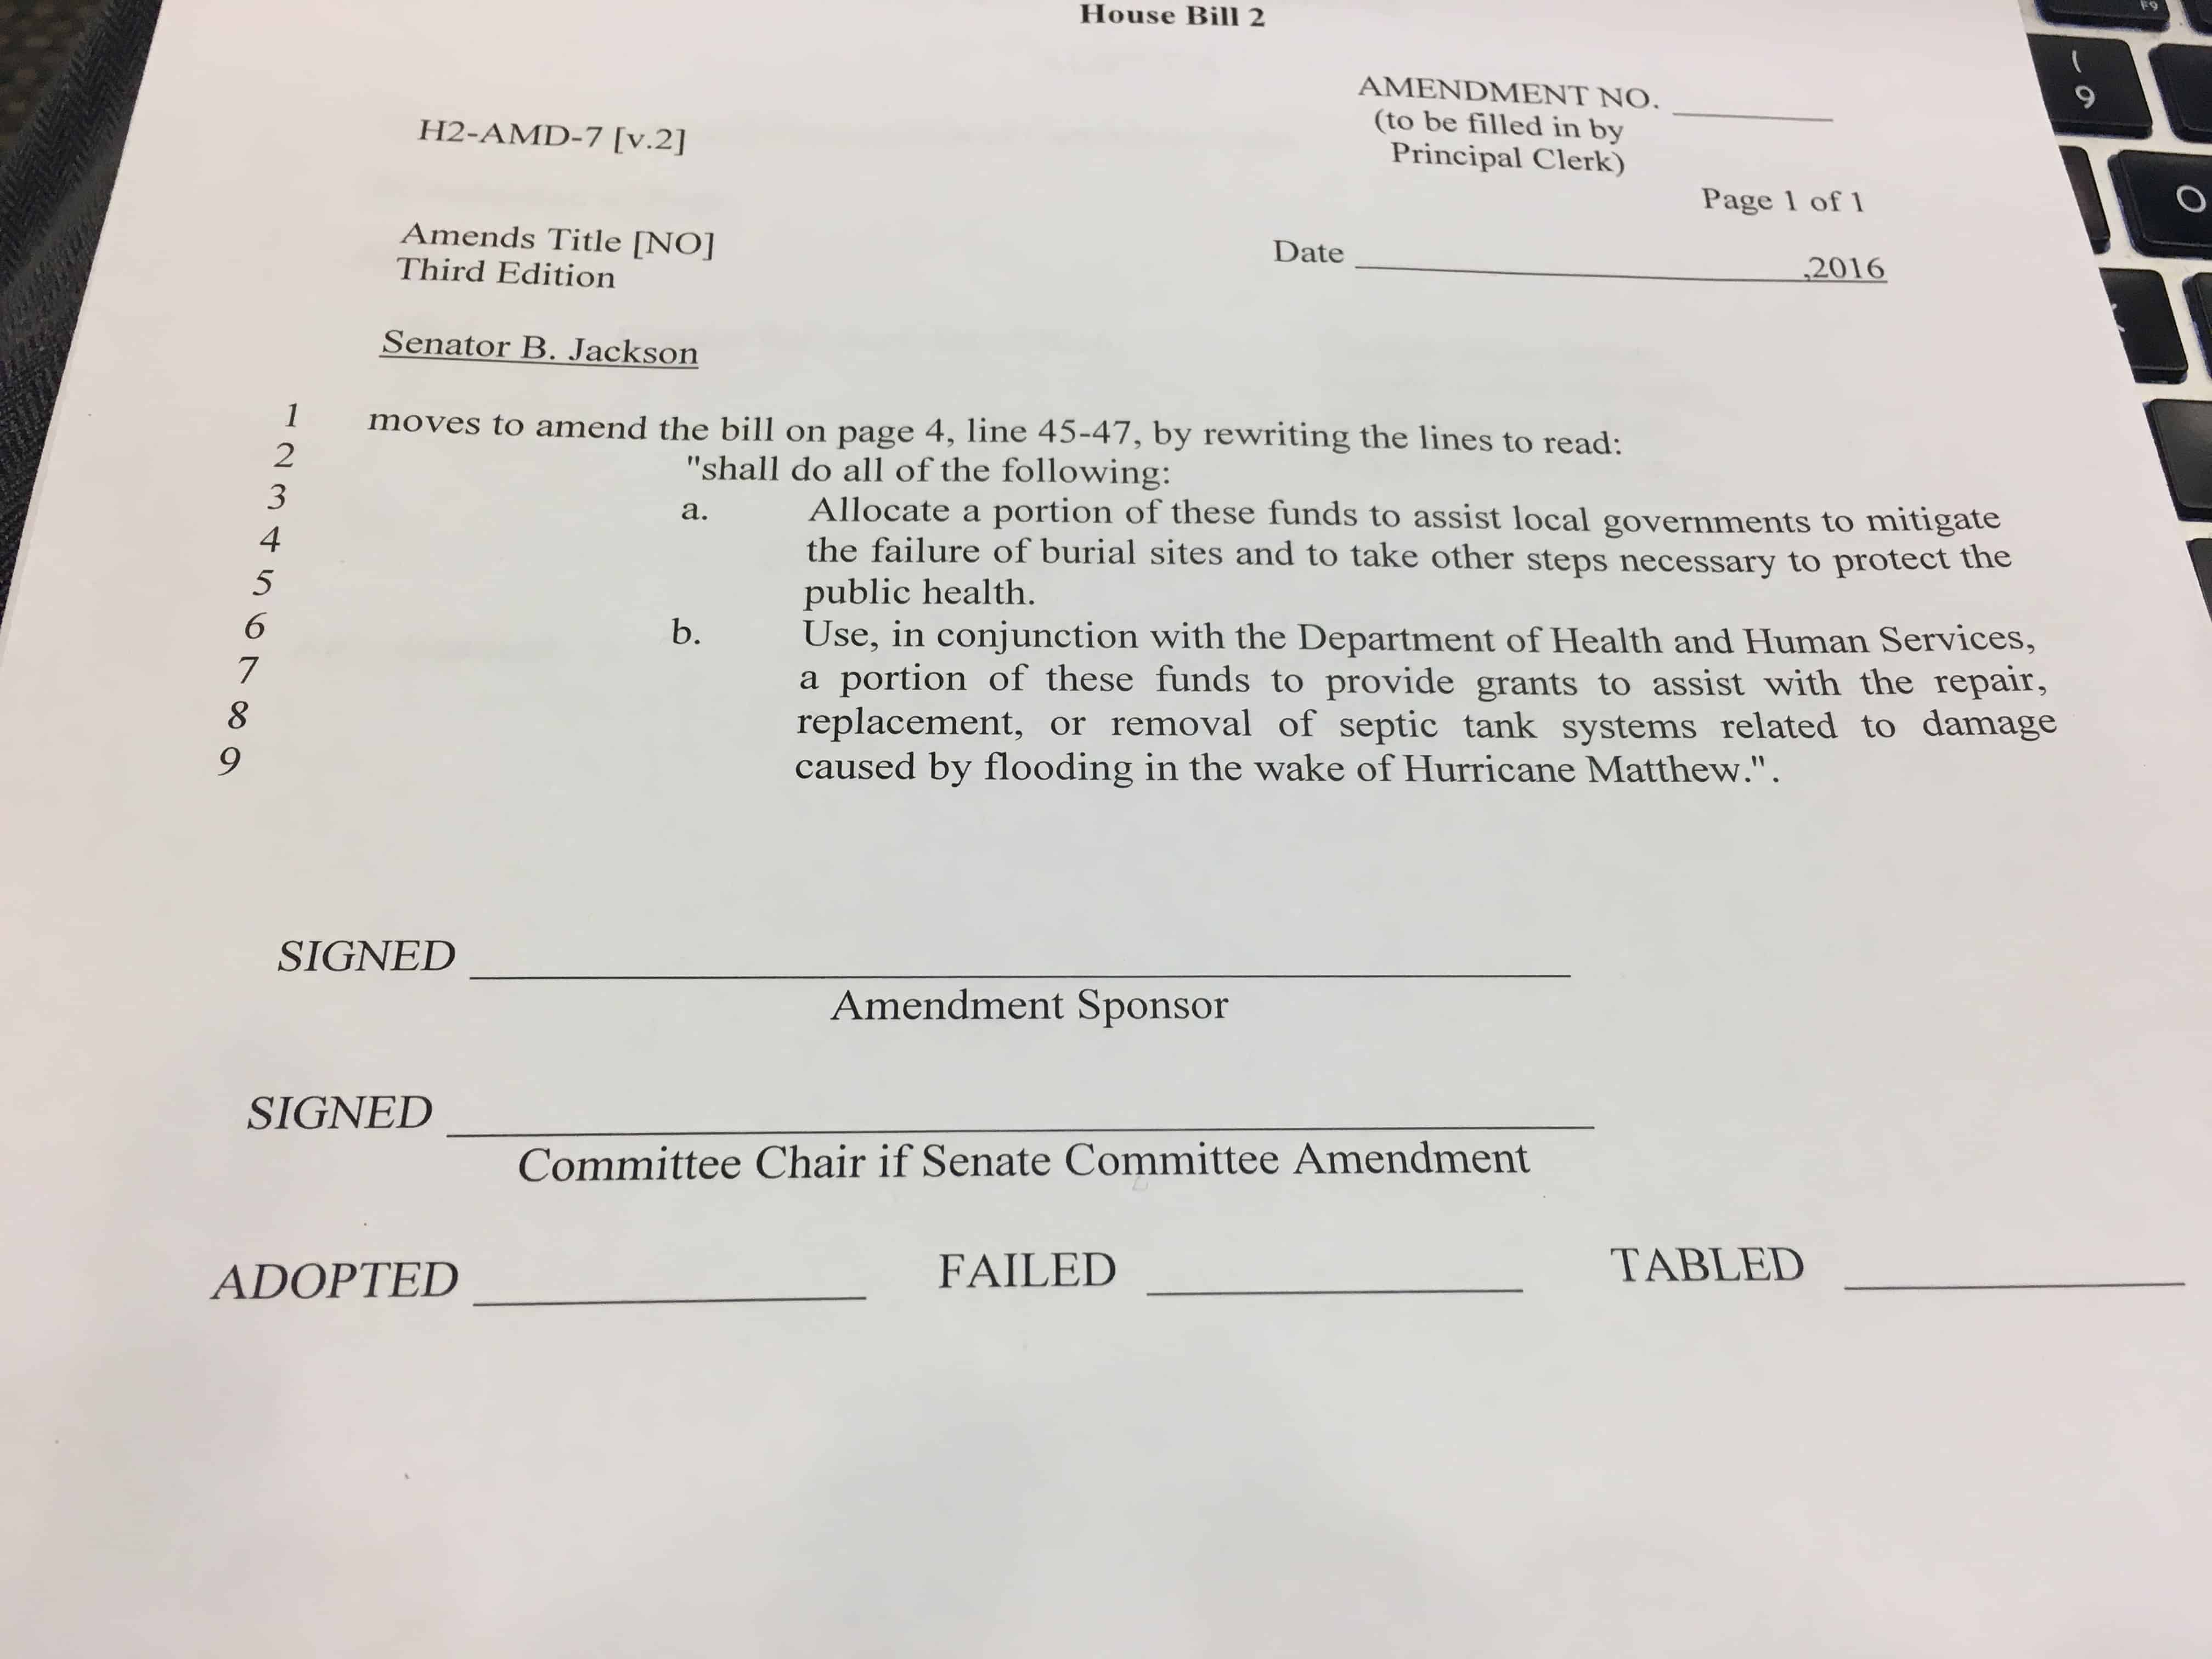 Amendment to disaster relief bill passed in Senate Appropriations